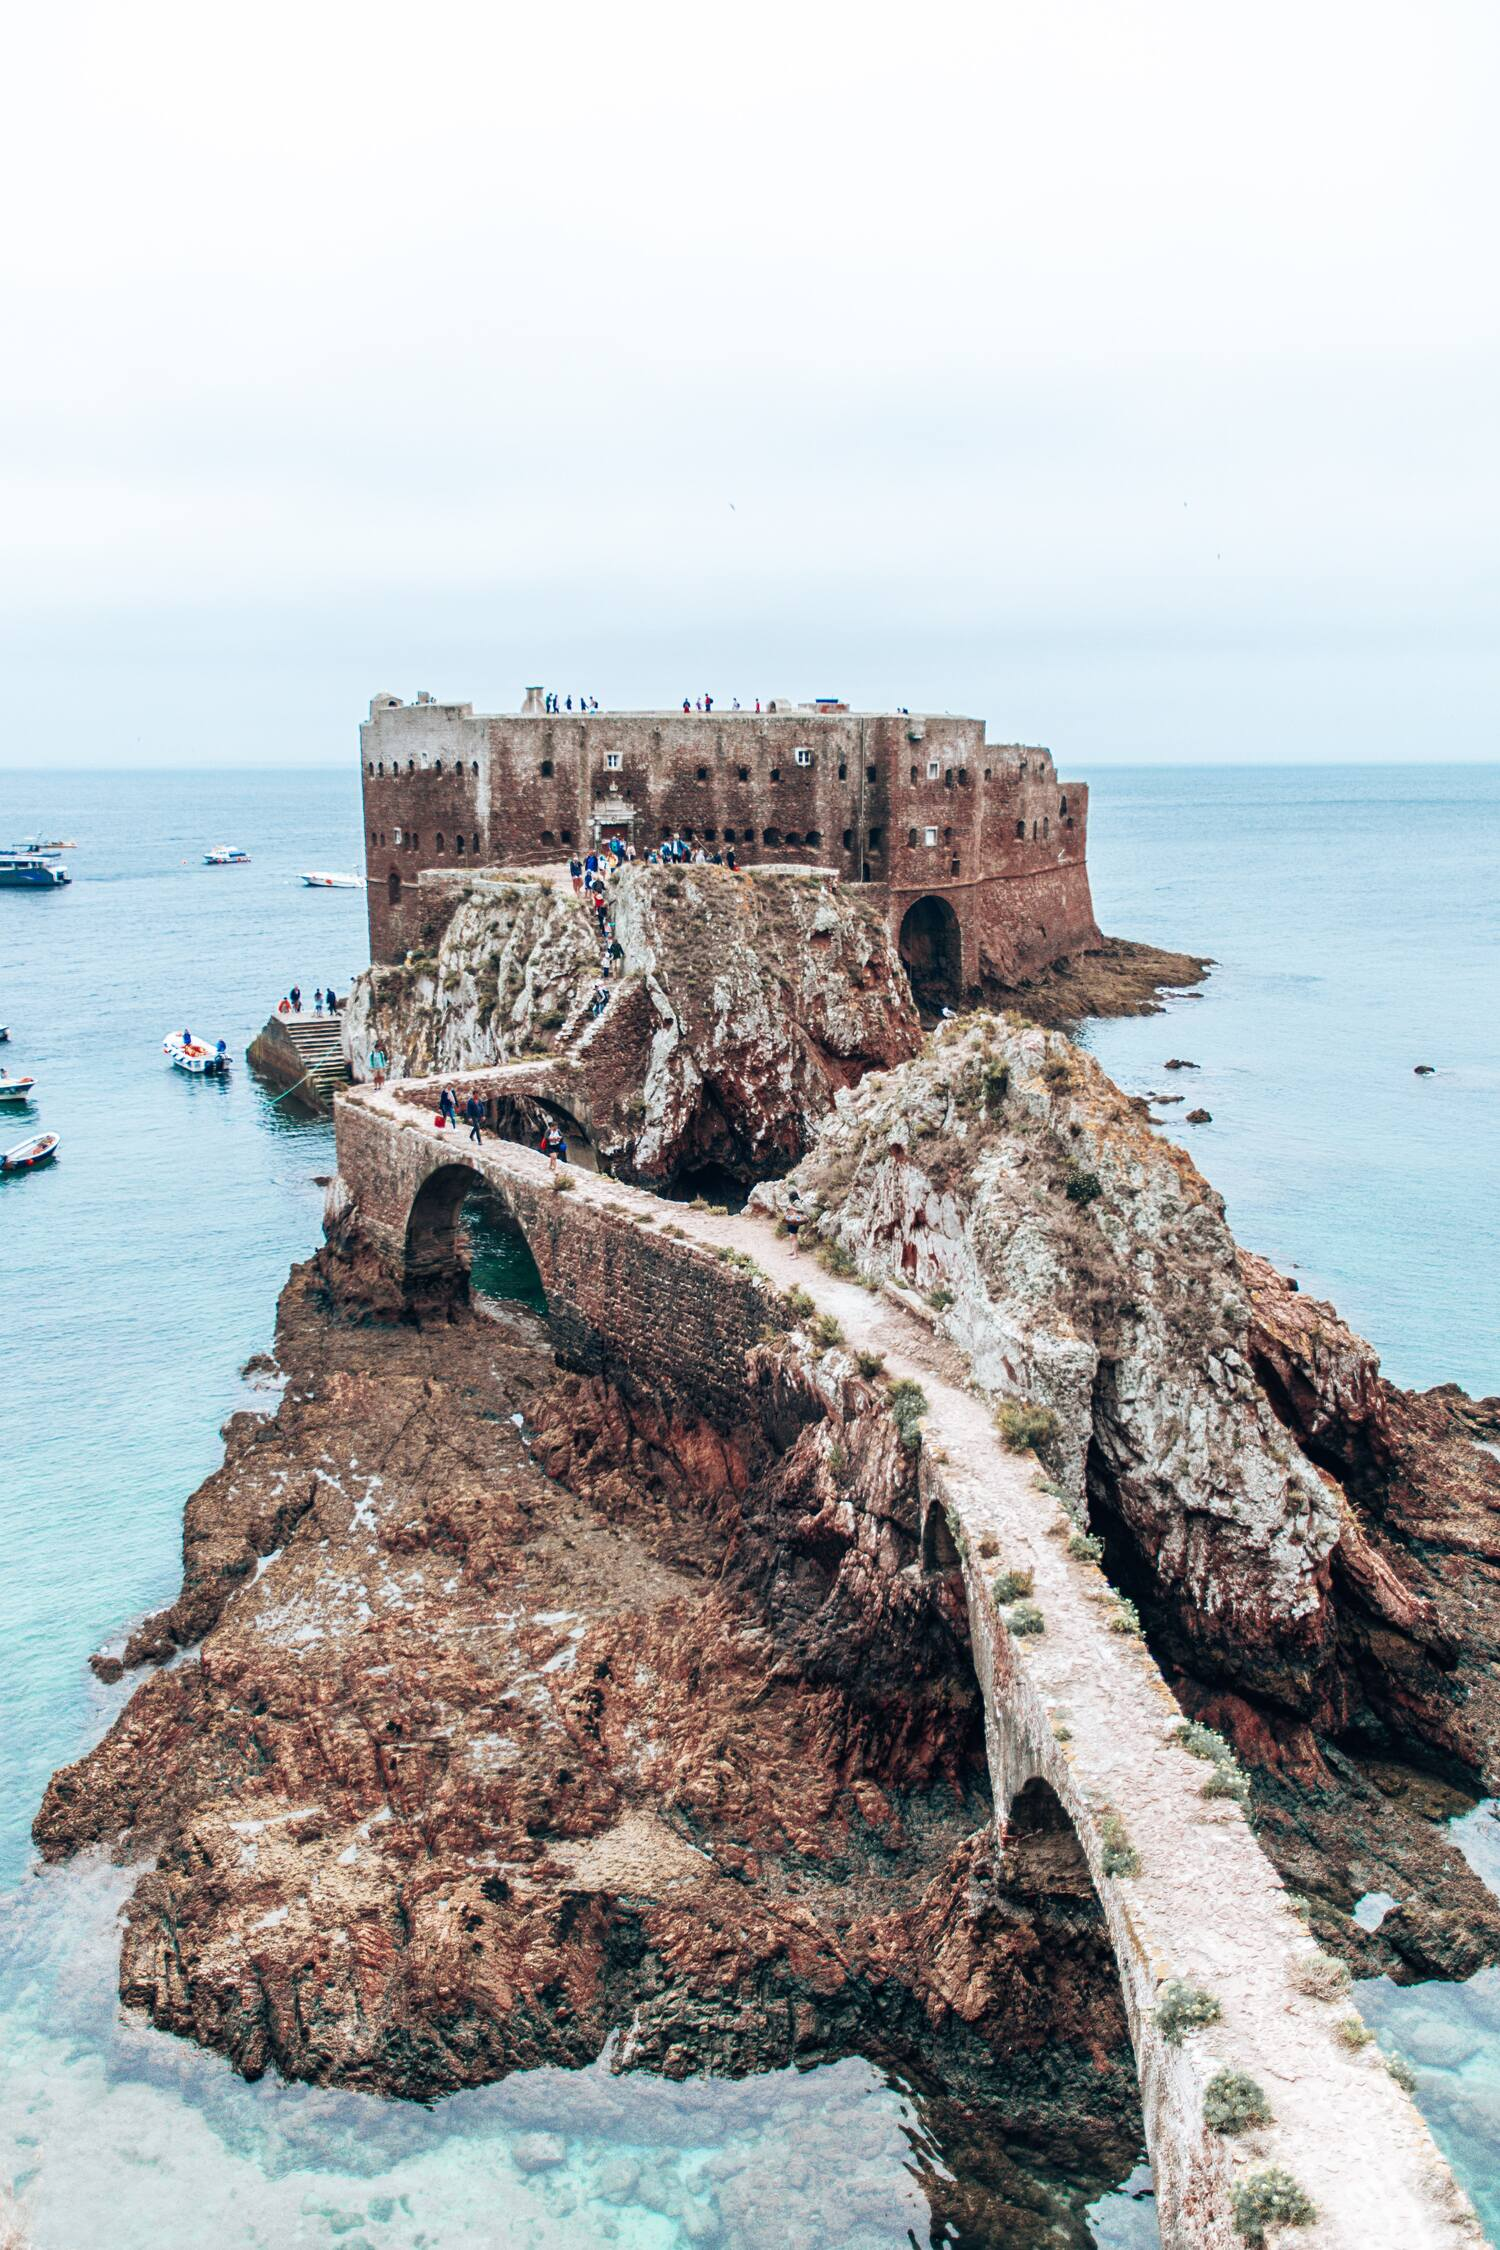 The Berlenga Island Fort, a must visit location when venturing on a Portugal road trip